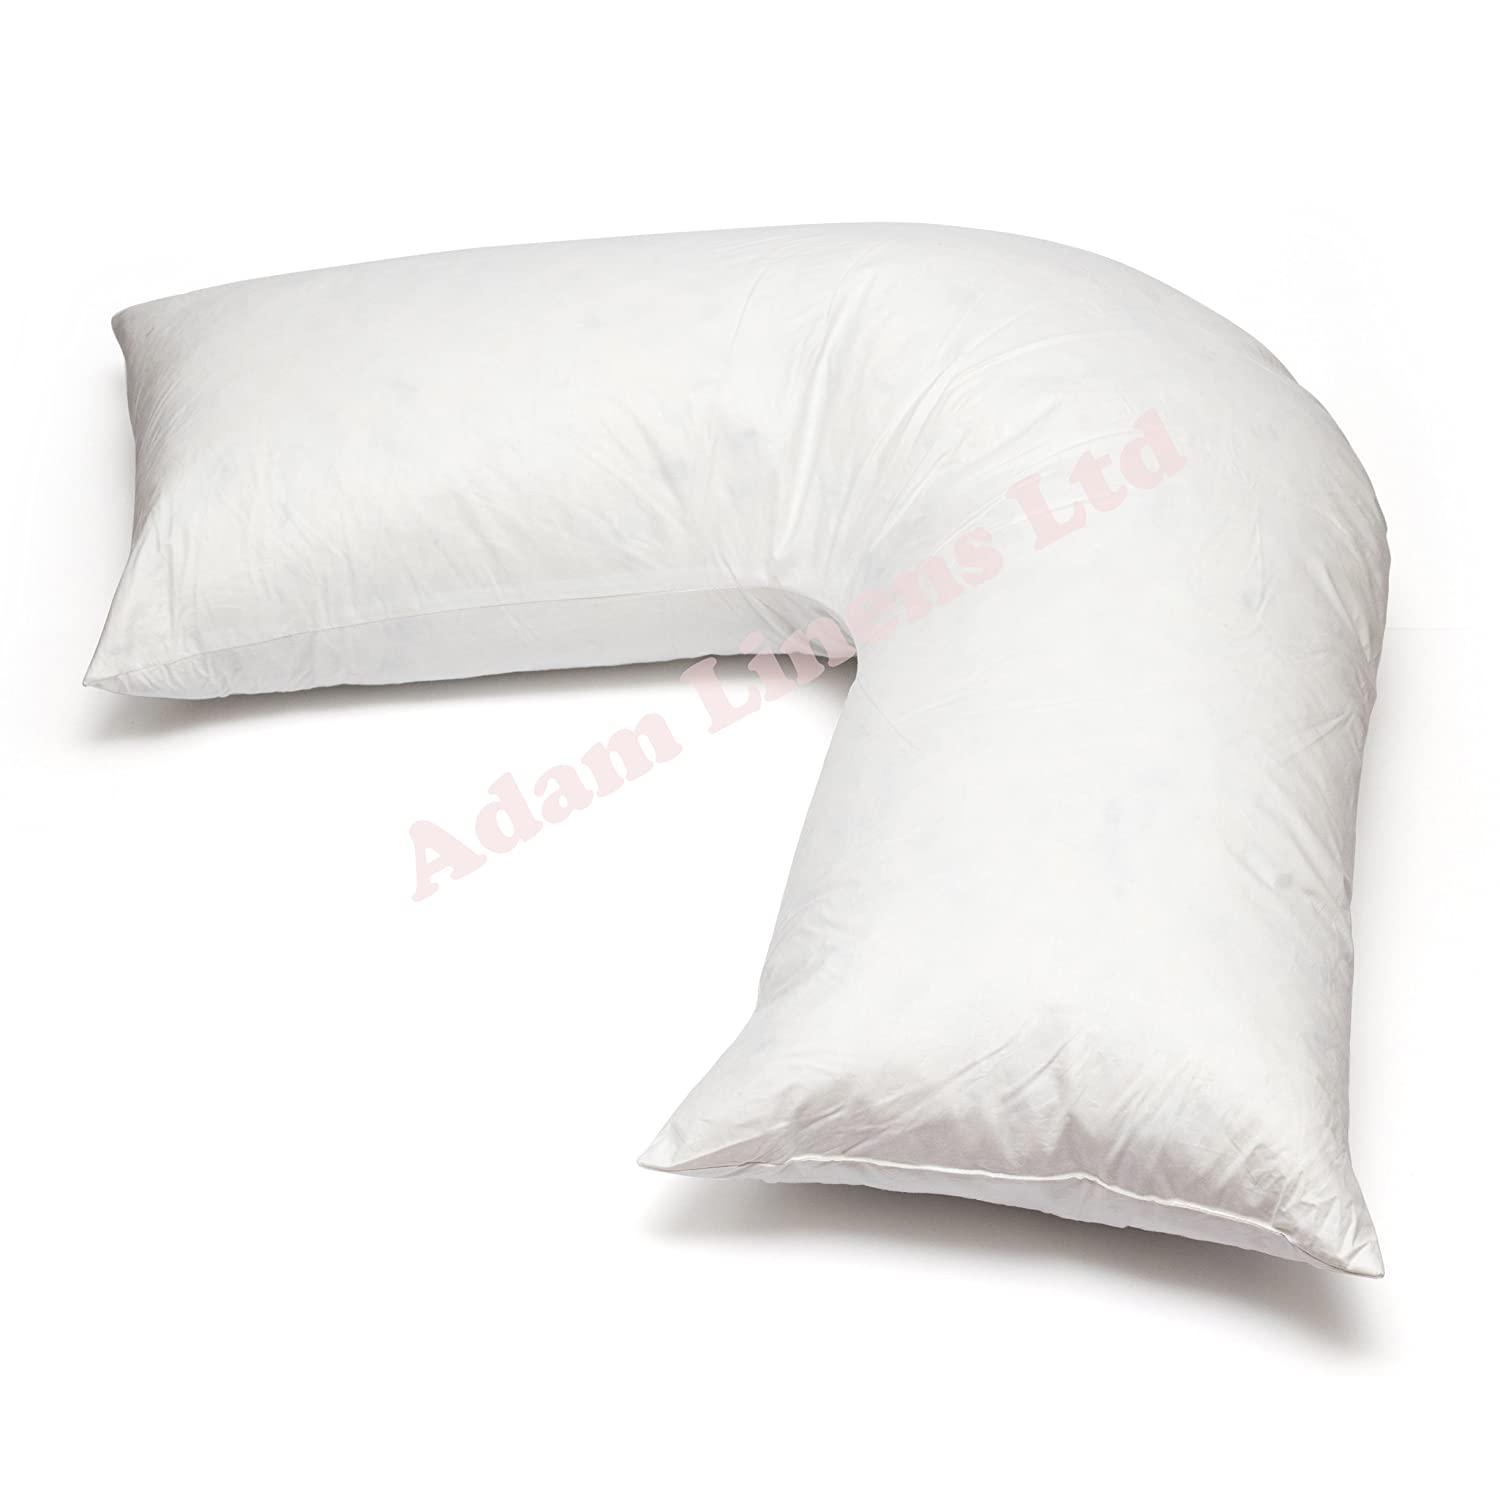 863ab16e27b Adamlinens Duck Feather   Down - V Shaped Pillow Only Washable